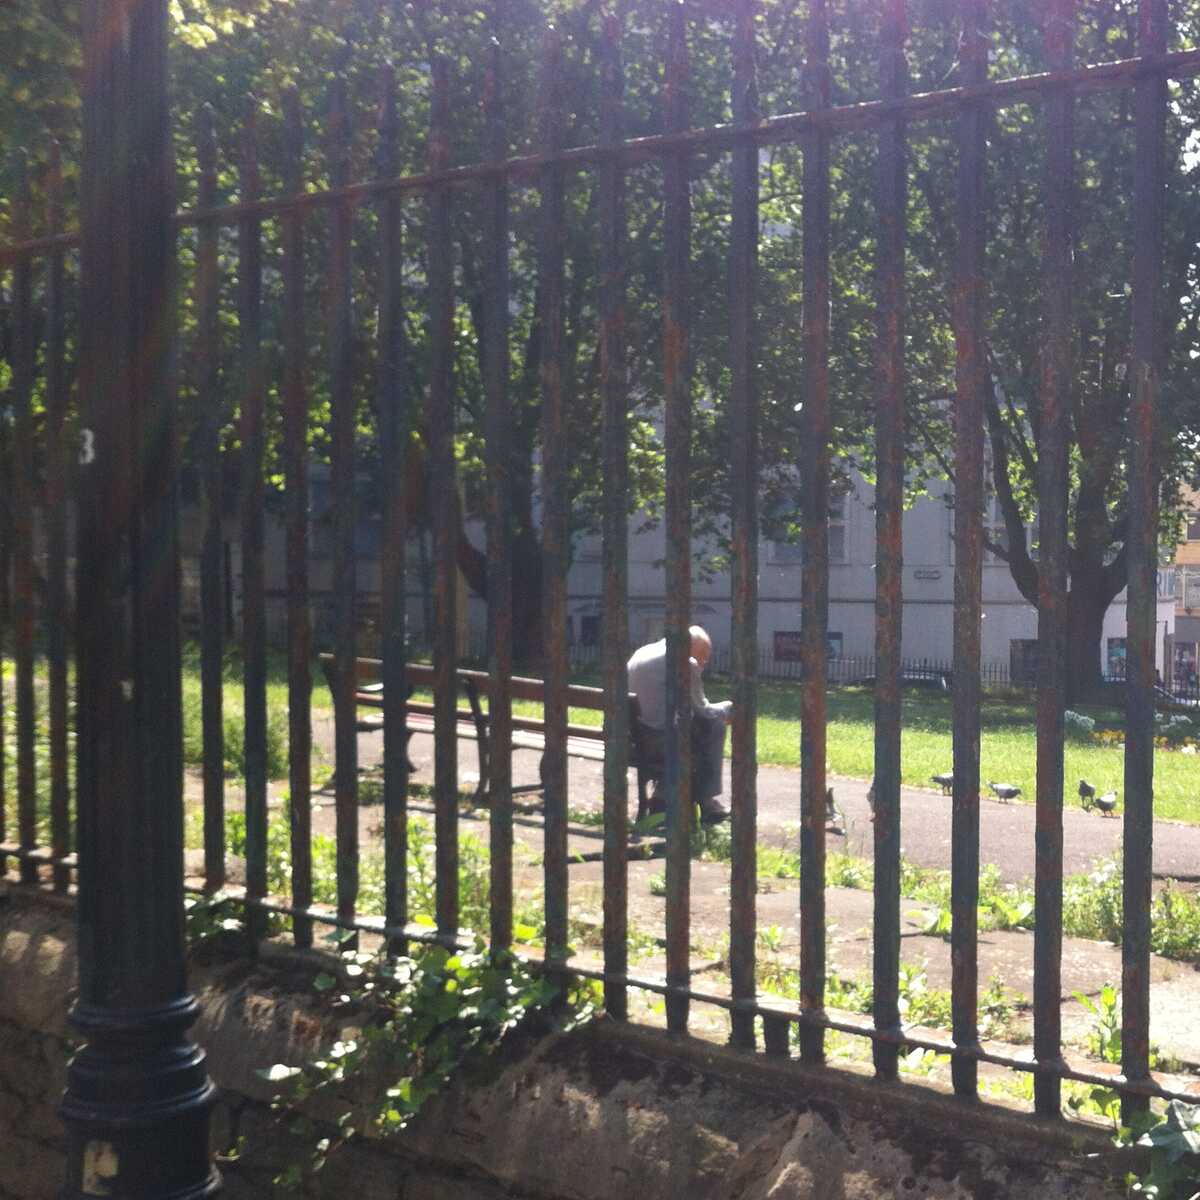 Looking through the bars of a park boundary at a man feeding pigeons